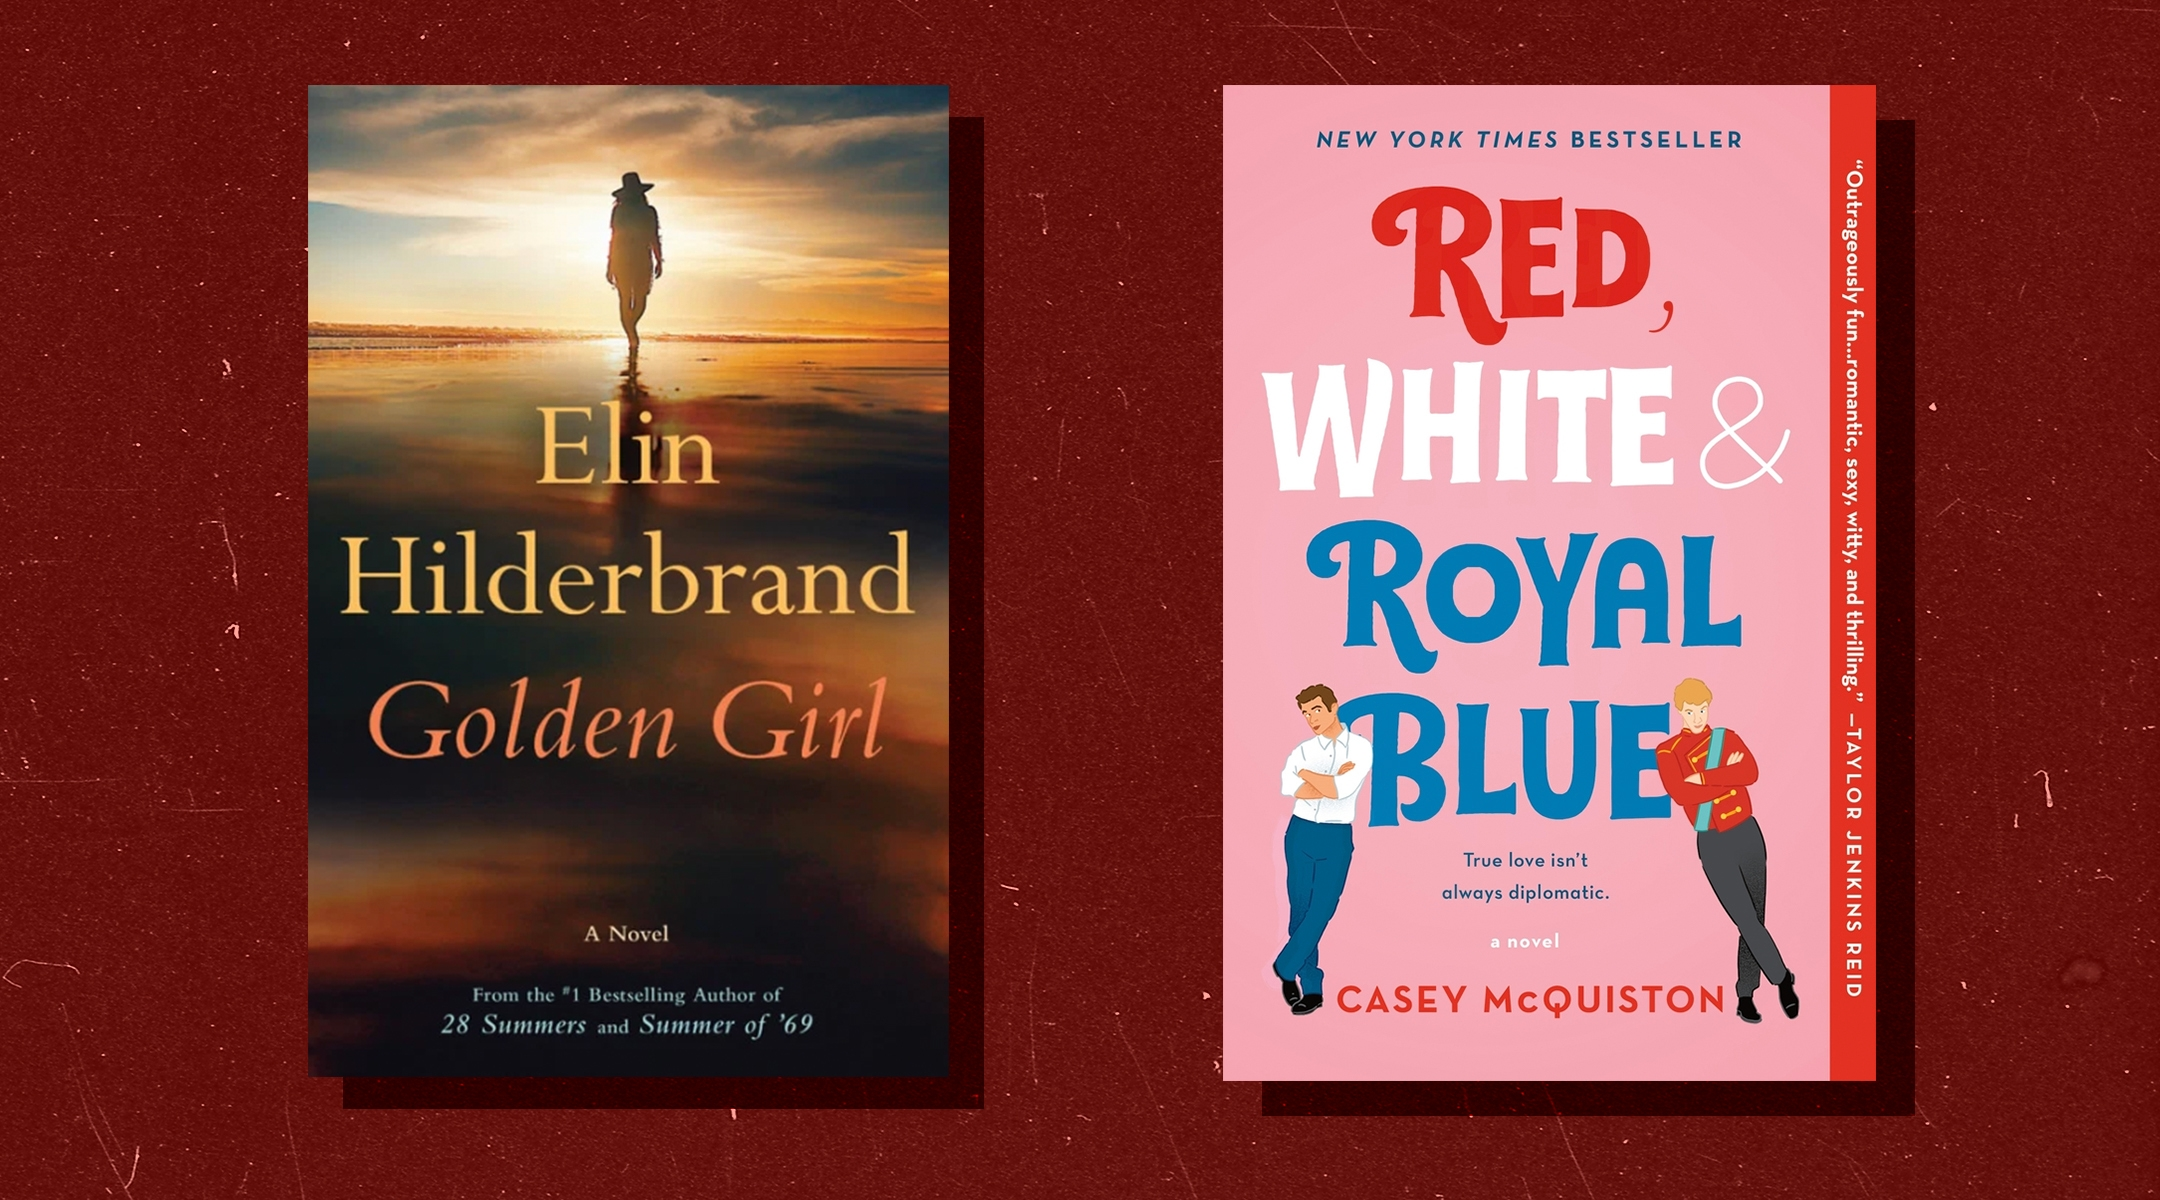 """Elin Hilderbrand's """"Golden Girl"""" and Casy McQuiston's """"Red, White & Royal Blue"""""""